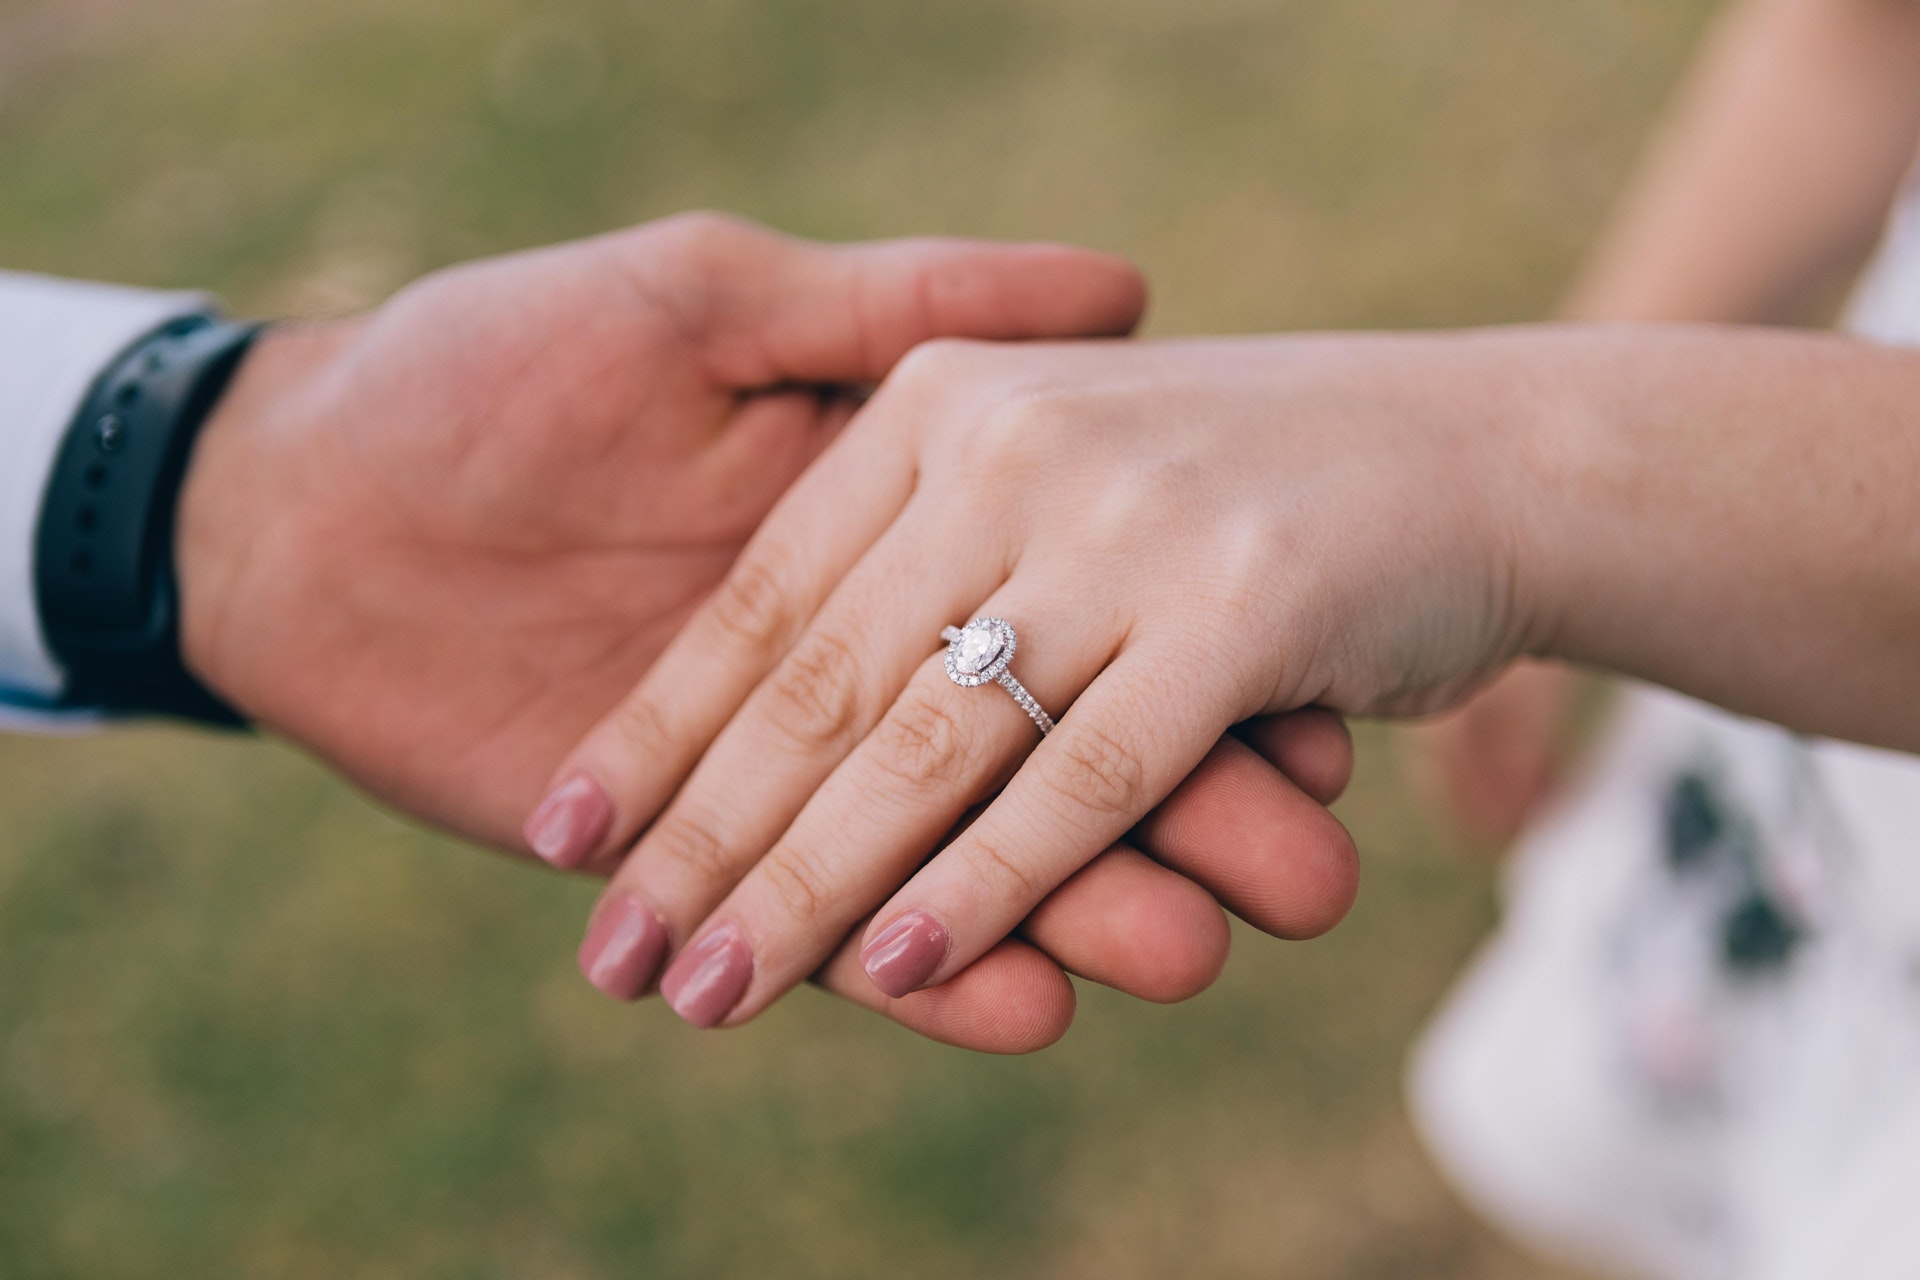 Engagement rings - Italian Wedding Traditions